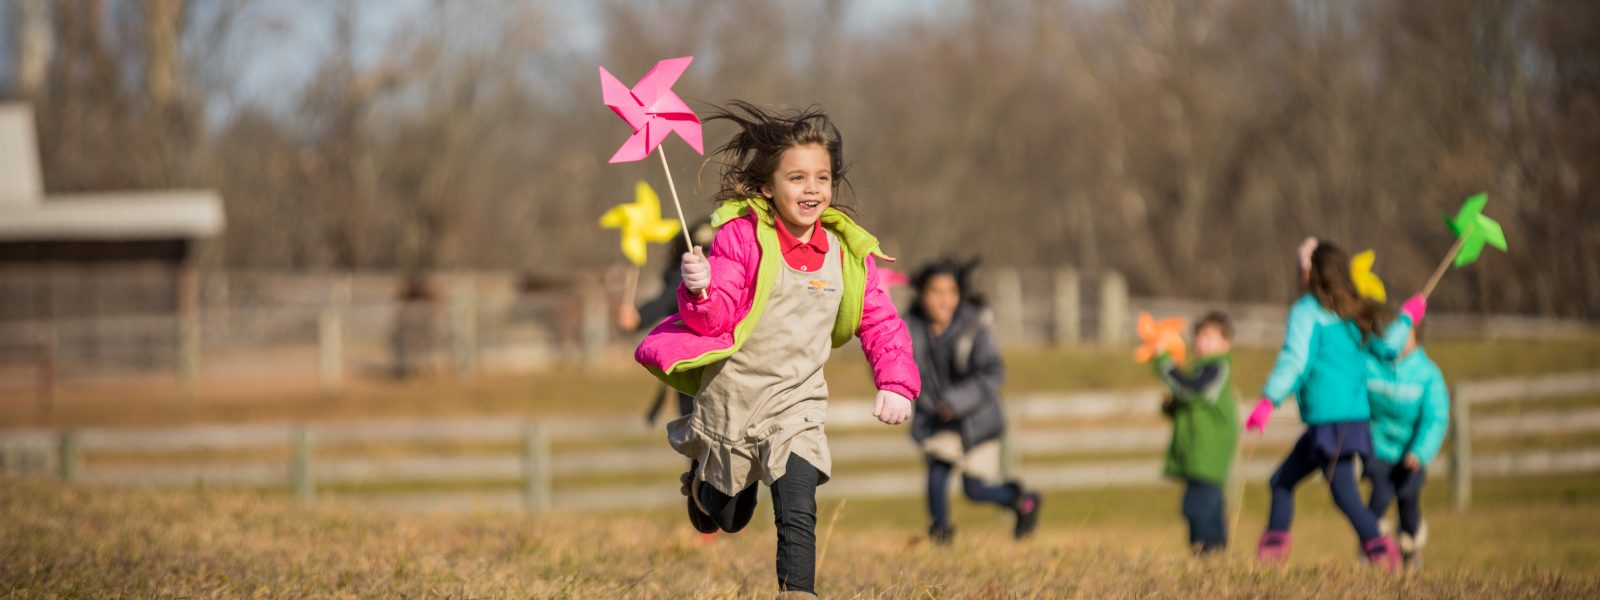 Elementary student running in field with pinwheel